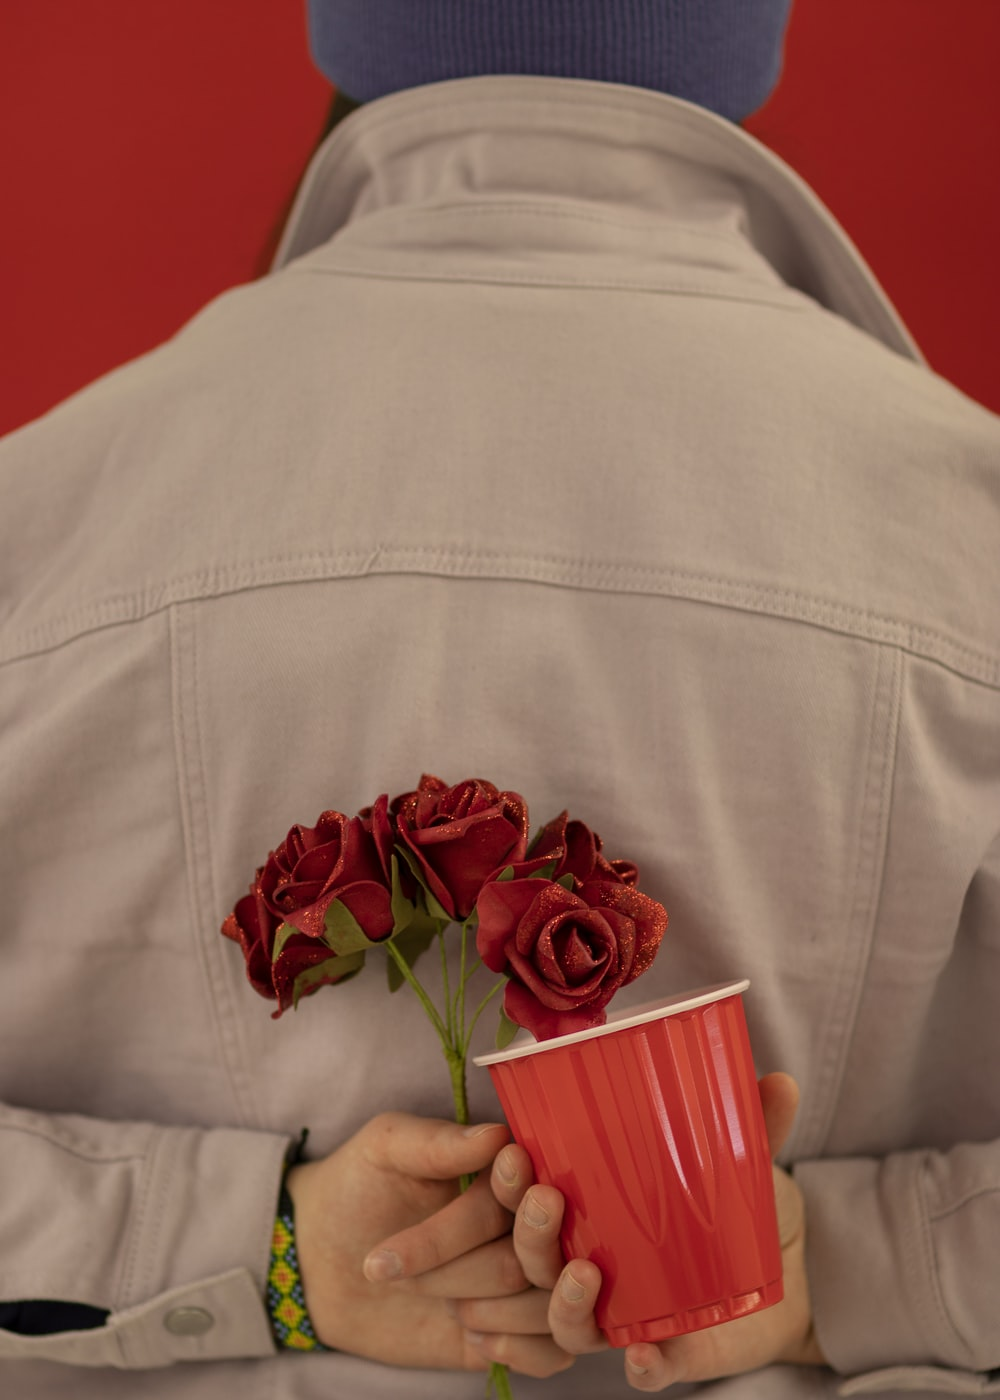 person holding red mug and red flowers